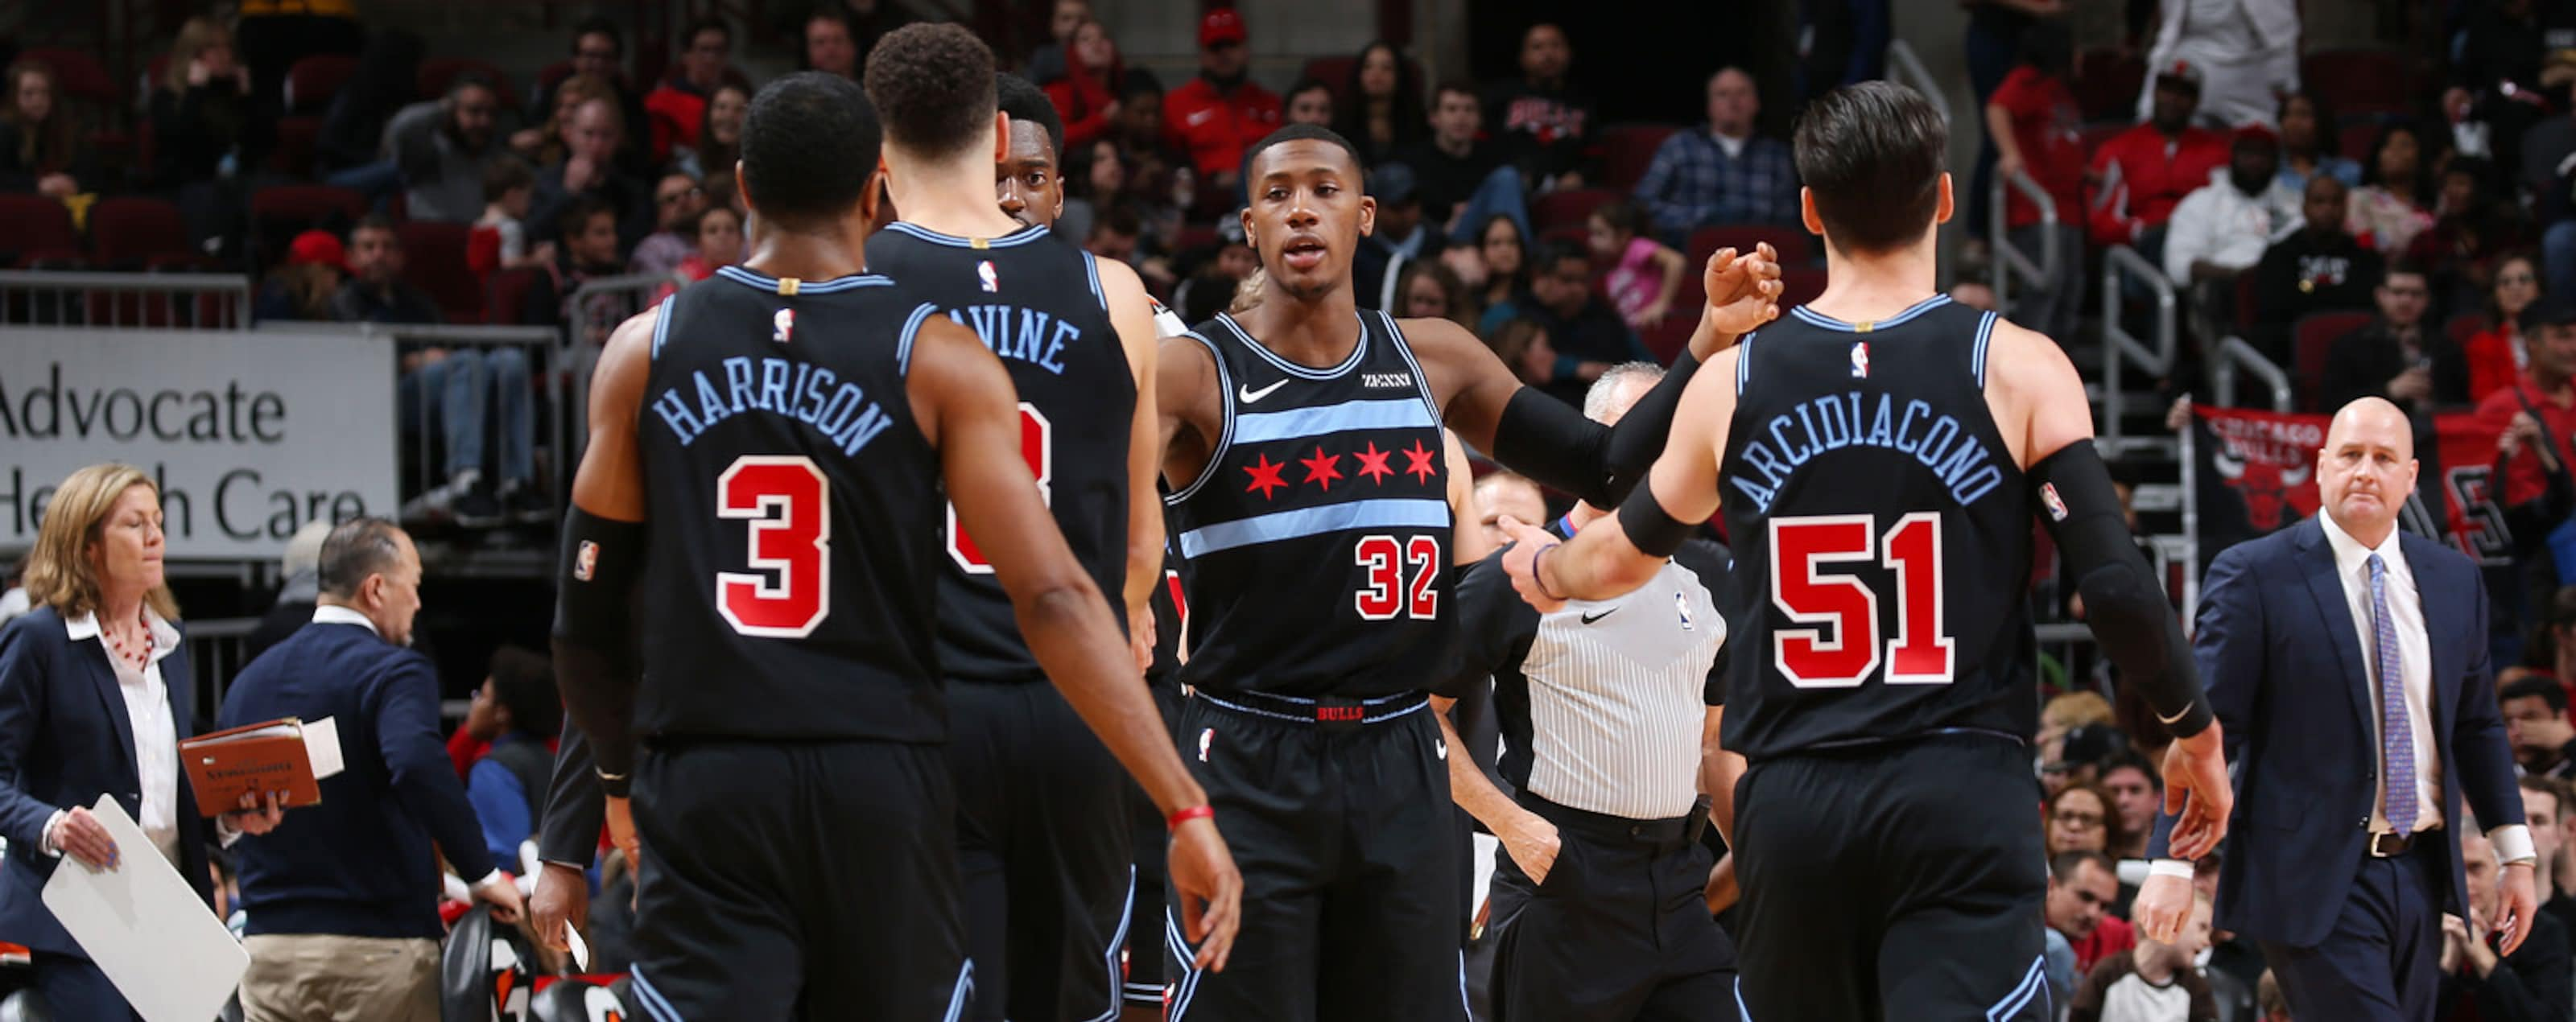 Kris Dunn #32 of the Chicago Bulls greets his team during the game against the Brooklyn Nets on January 6, 2019 at the United Center in Chicago, Illinois.